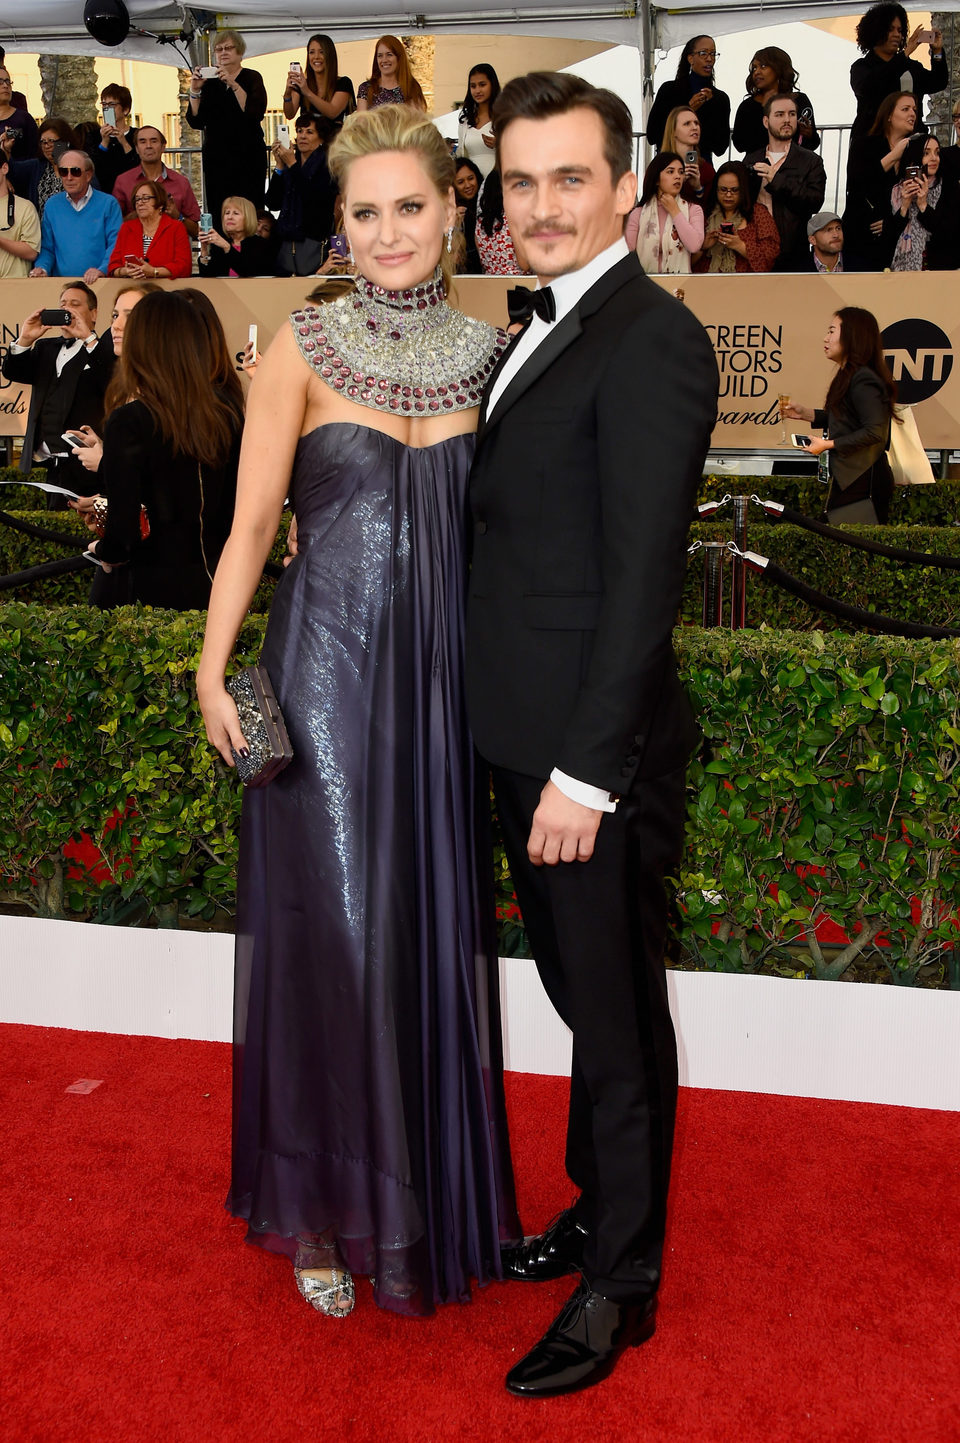 Rupert Friend and Aimee Mullins at the SAG Awards 2016 red carpet